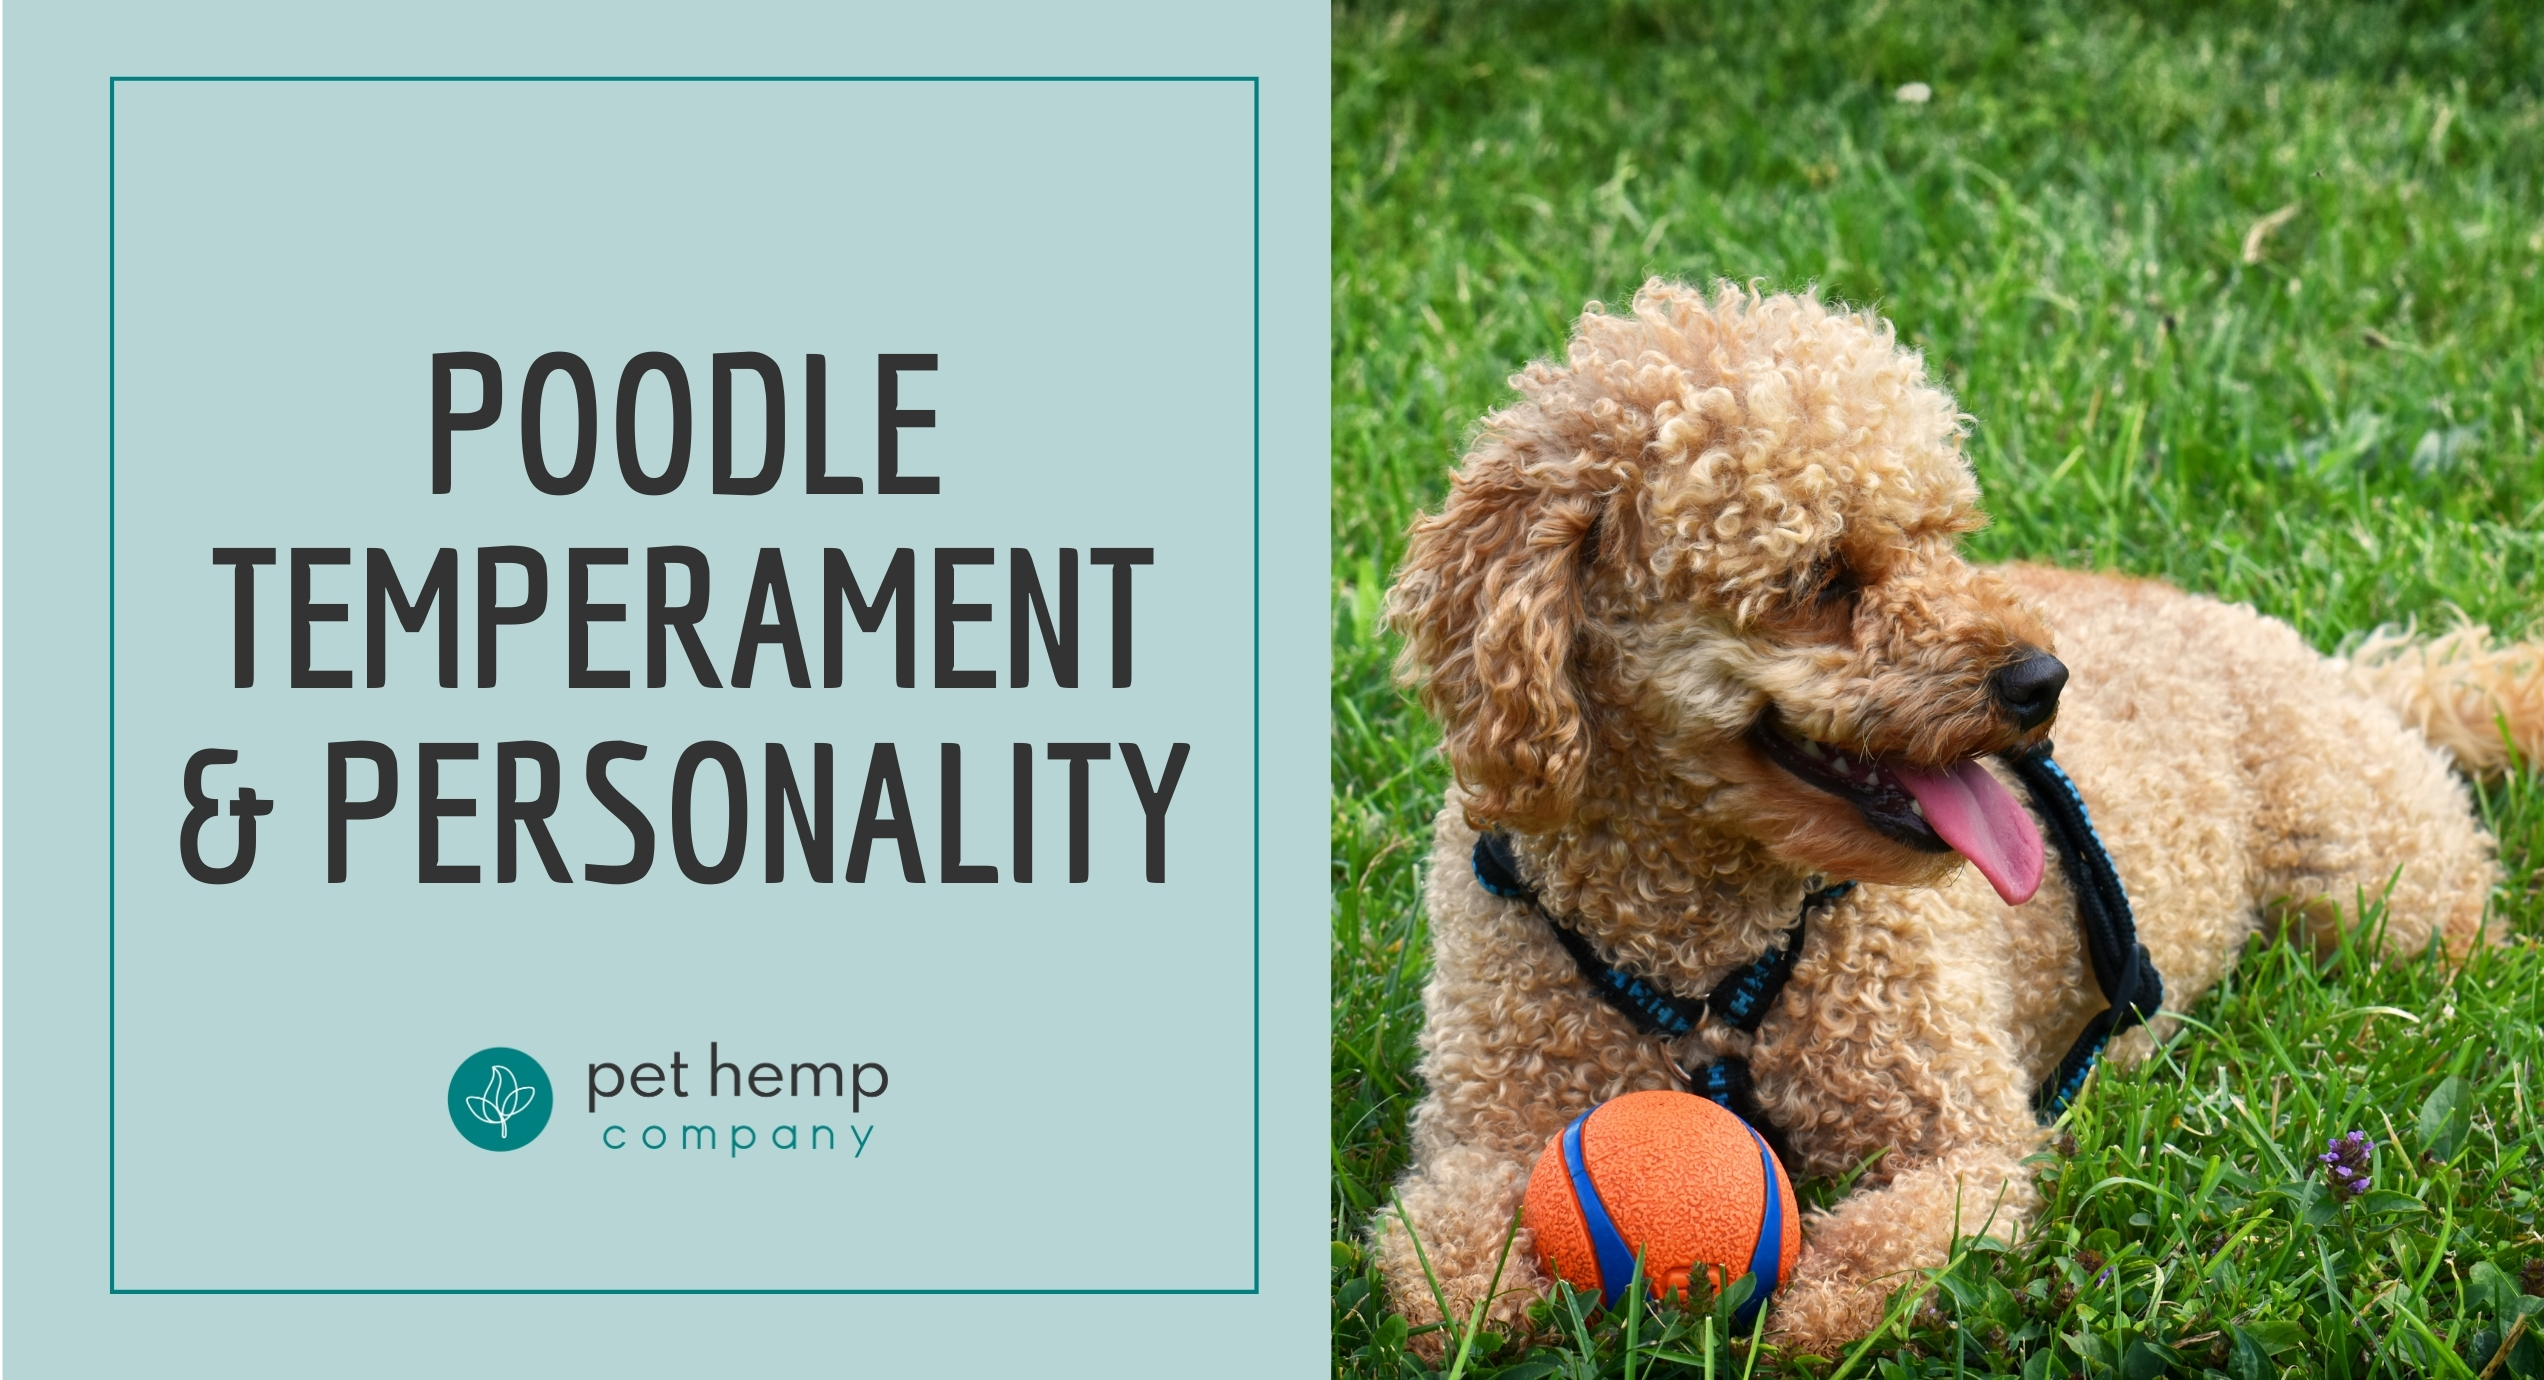 poodle temperament personality